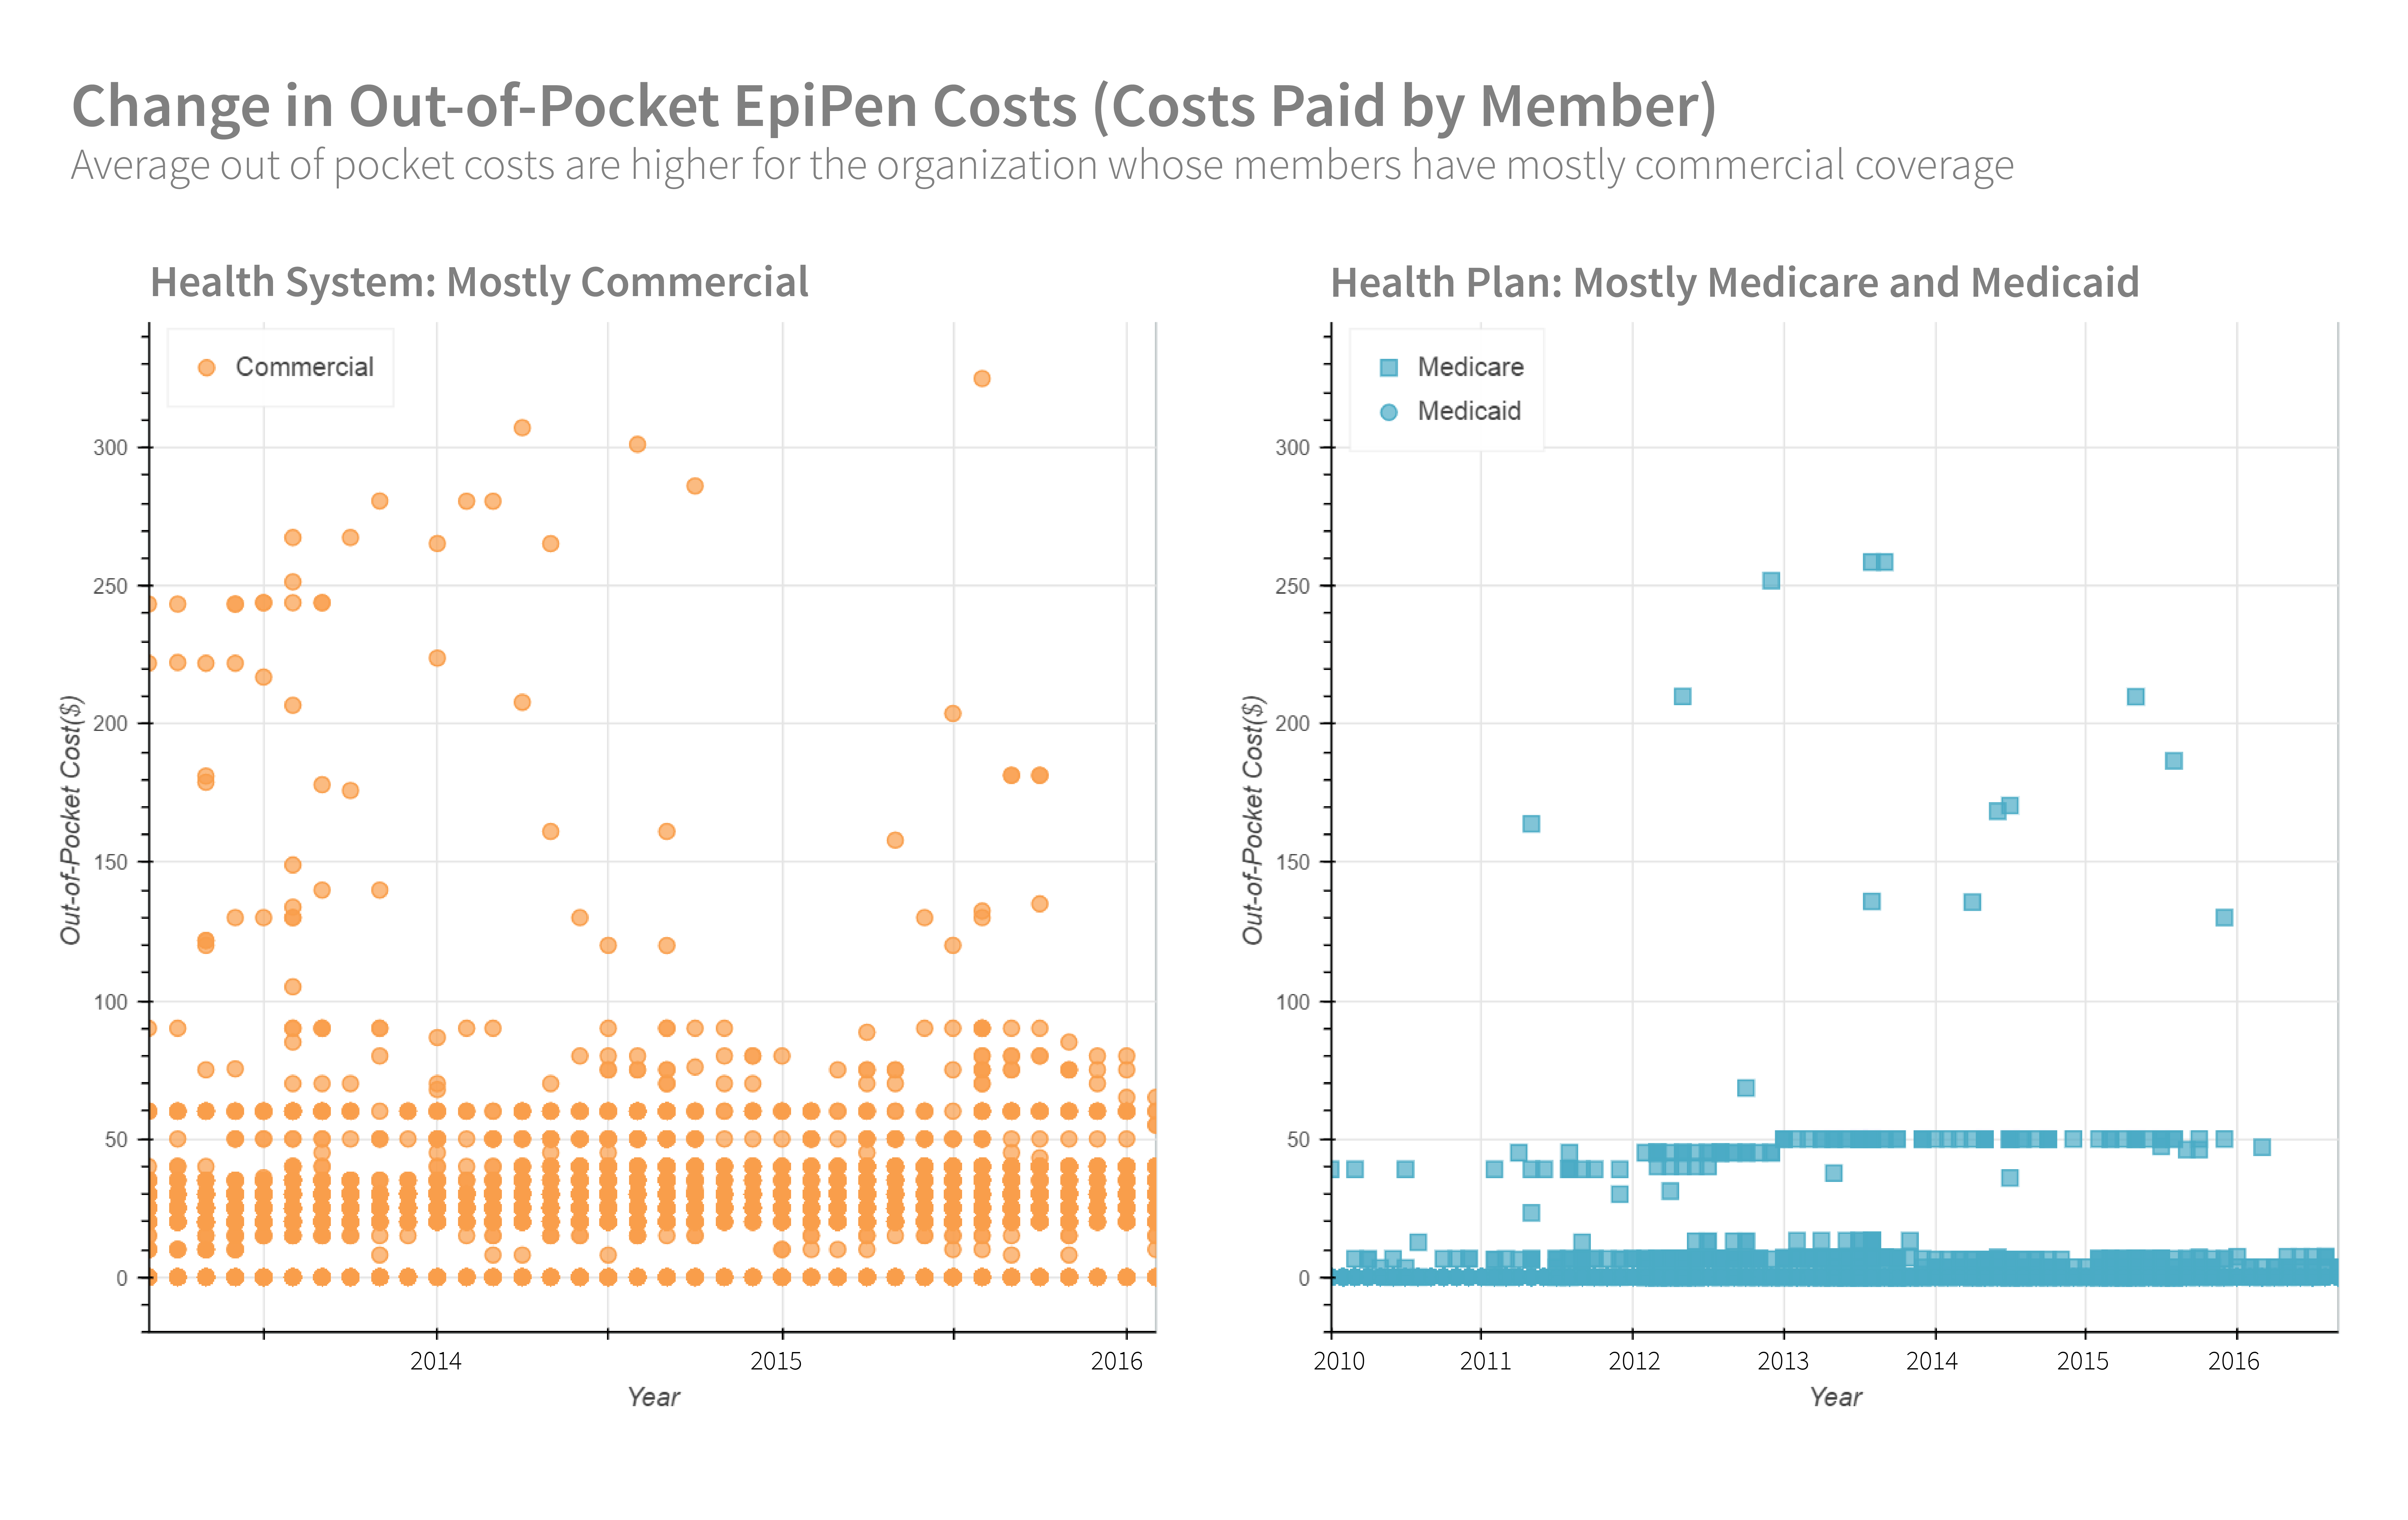 Change in Out-of-Pocket EpiPen Costs (Costs Paid by Member)